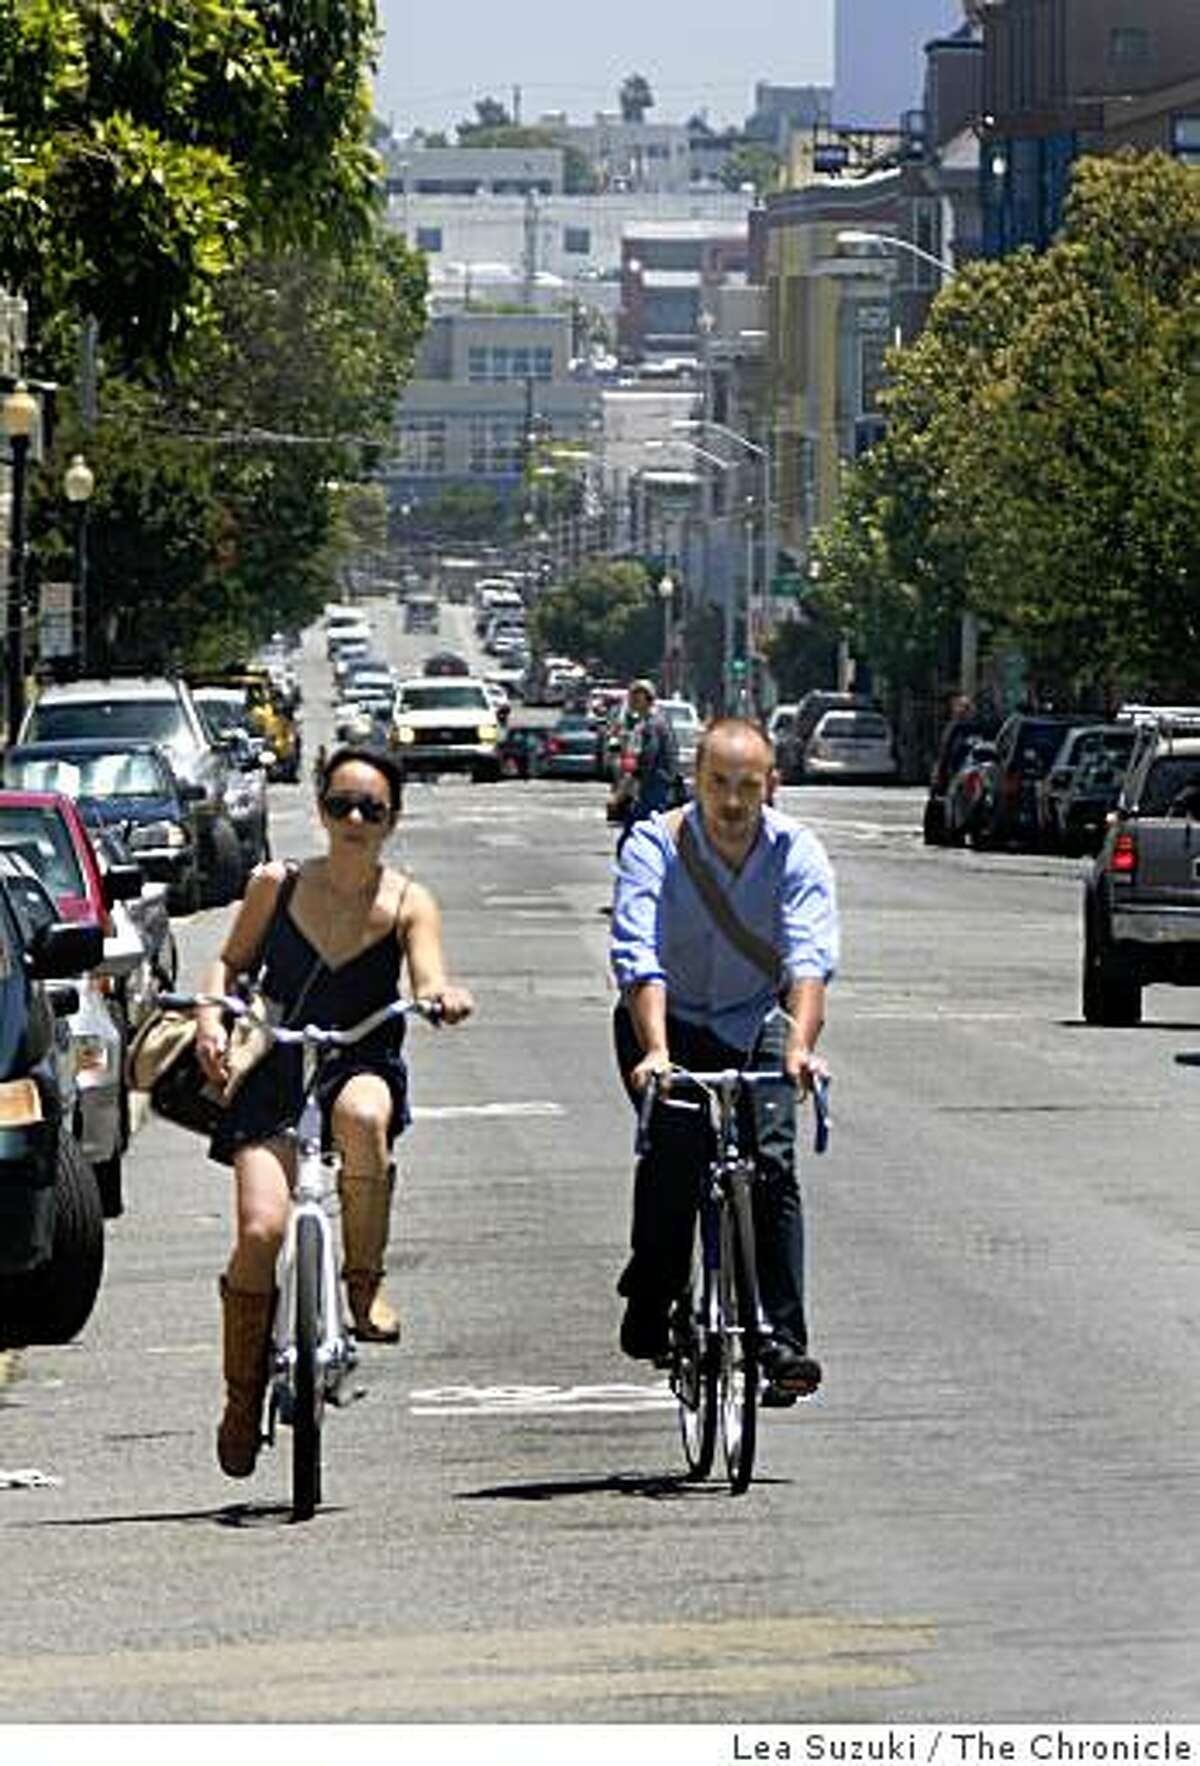 Monika Collins and Stephen Osadetz, both of San Francisco, chat as they pedal their bikes on 17th street near Dolores street on Tuesday June 23, 2009 in San Francisco, Calif.